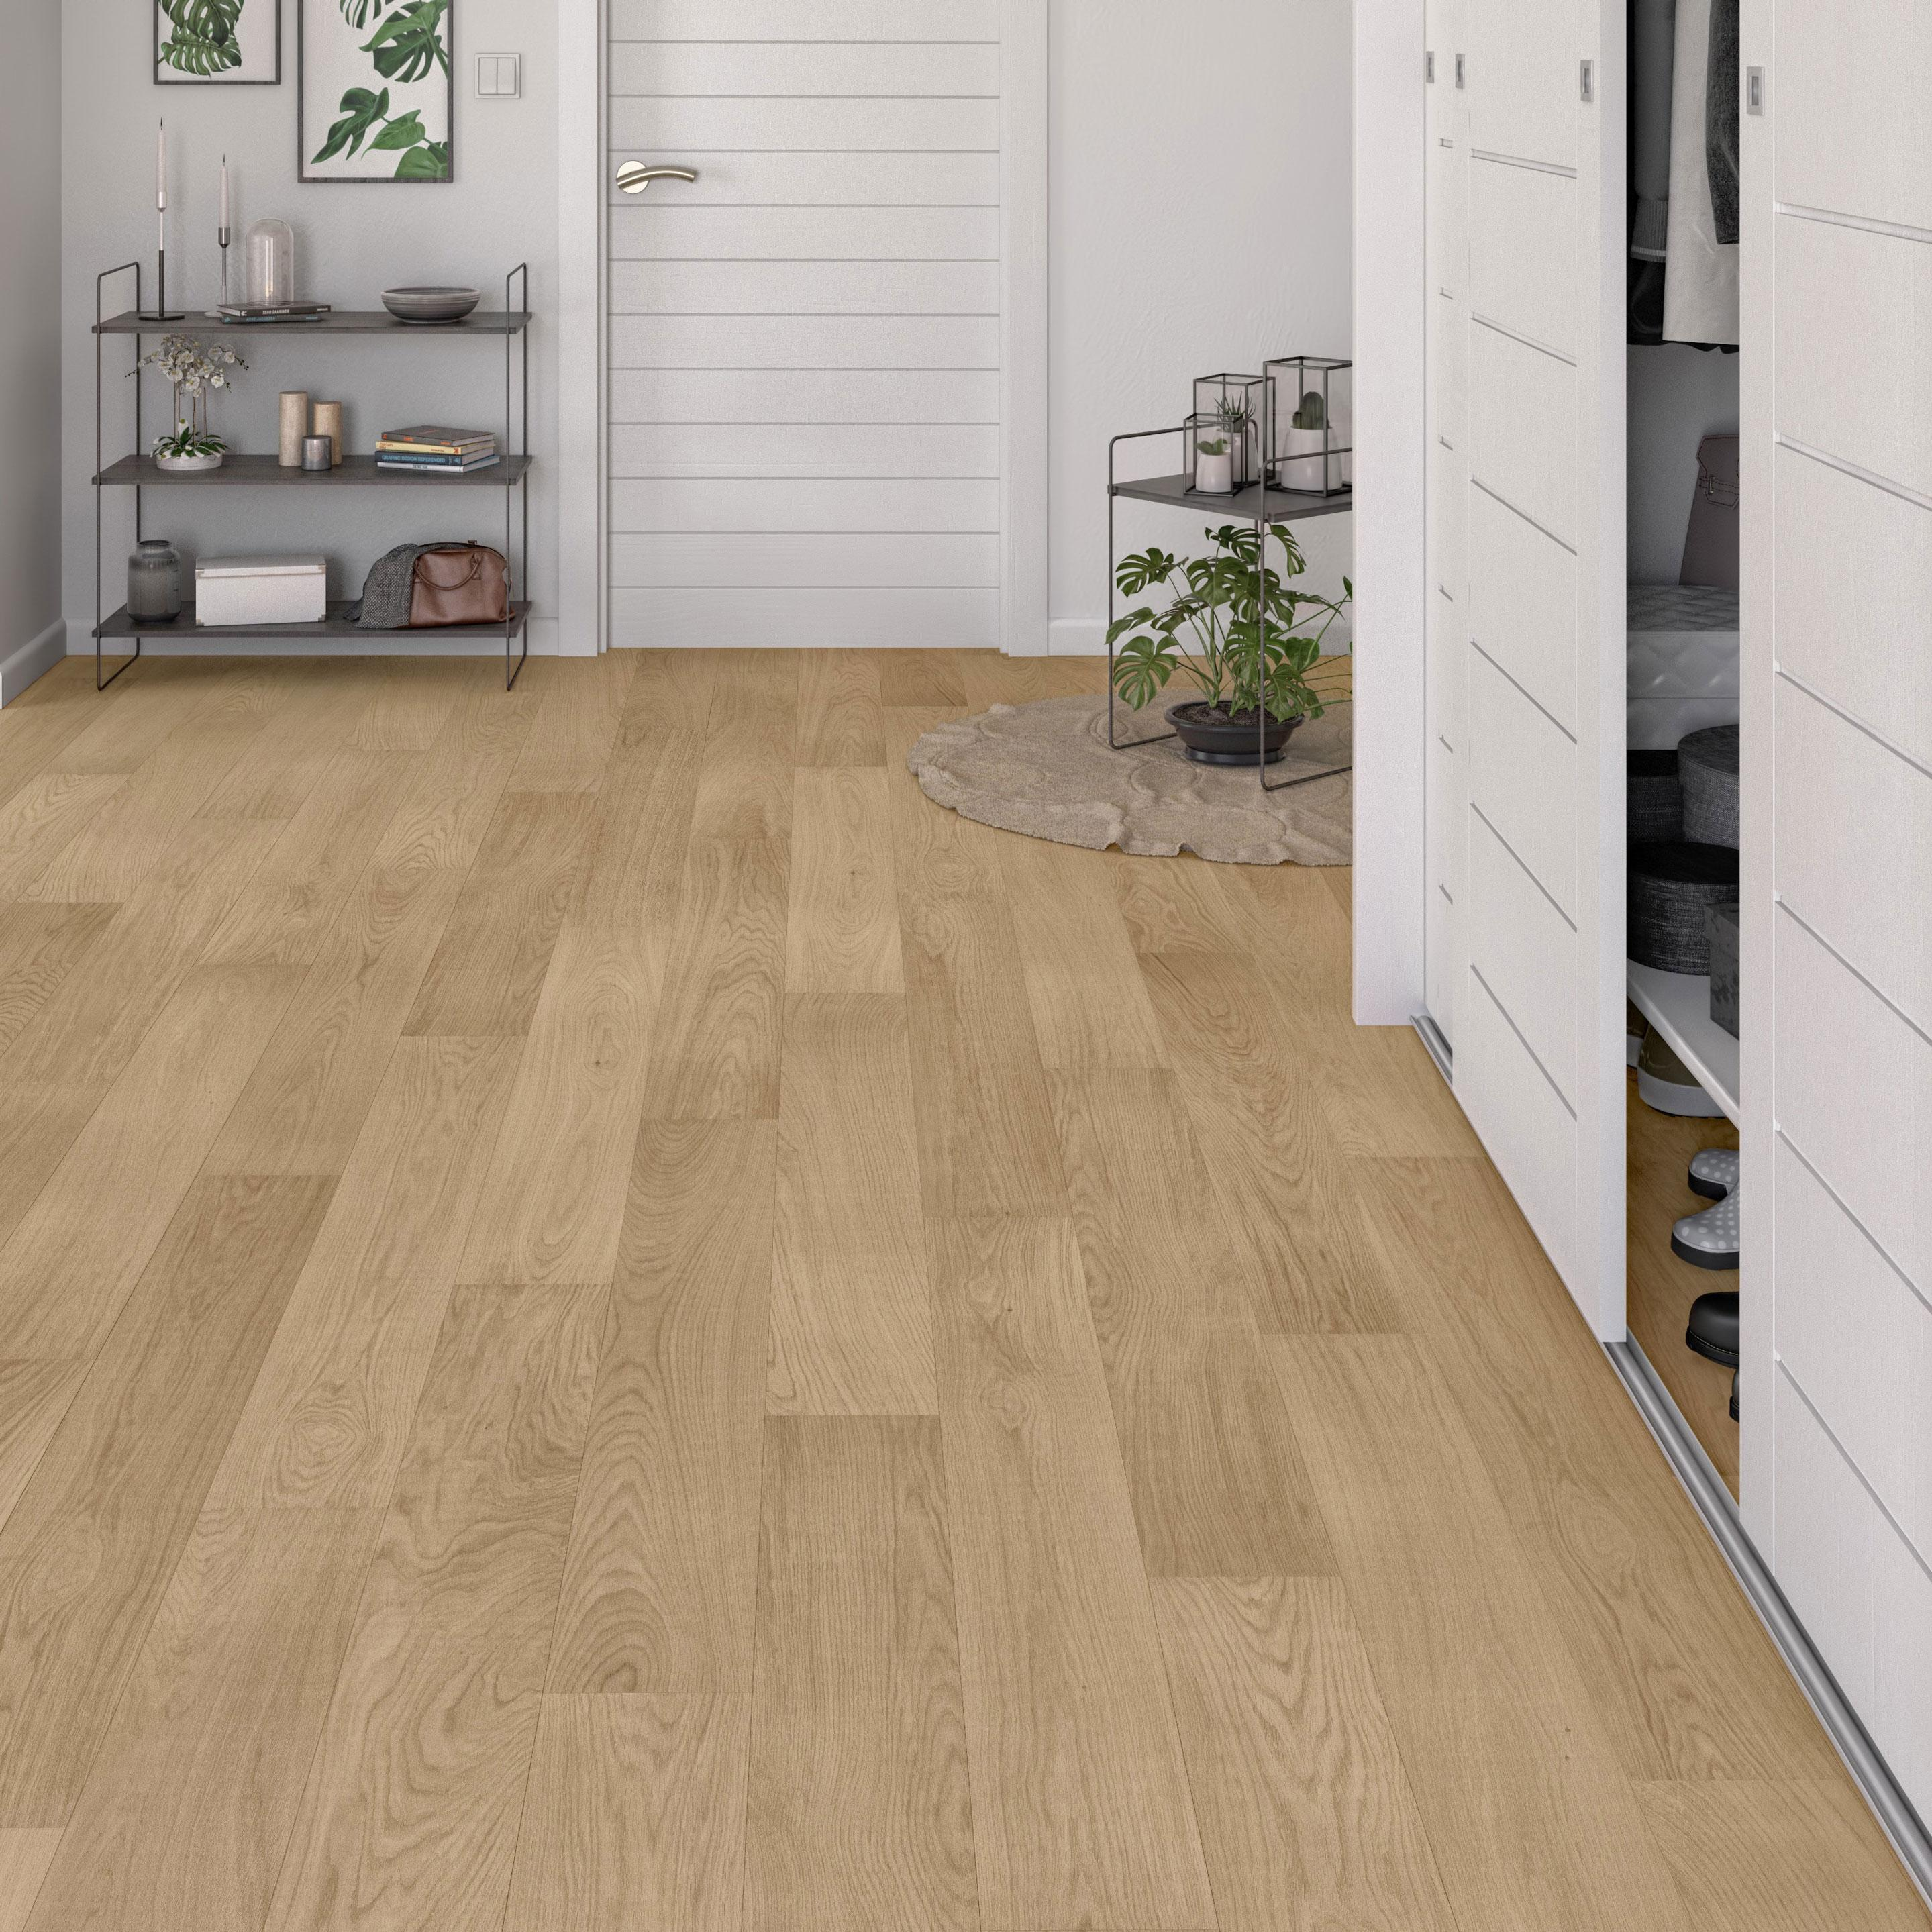 Parquet Bois Contrecolle Intenso Chene Europeen Naturel Huile L Artens Leroy Merlin